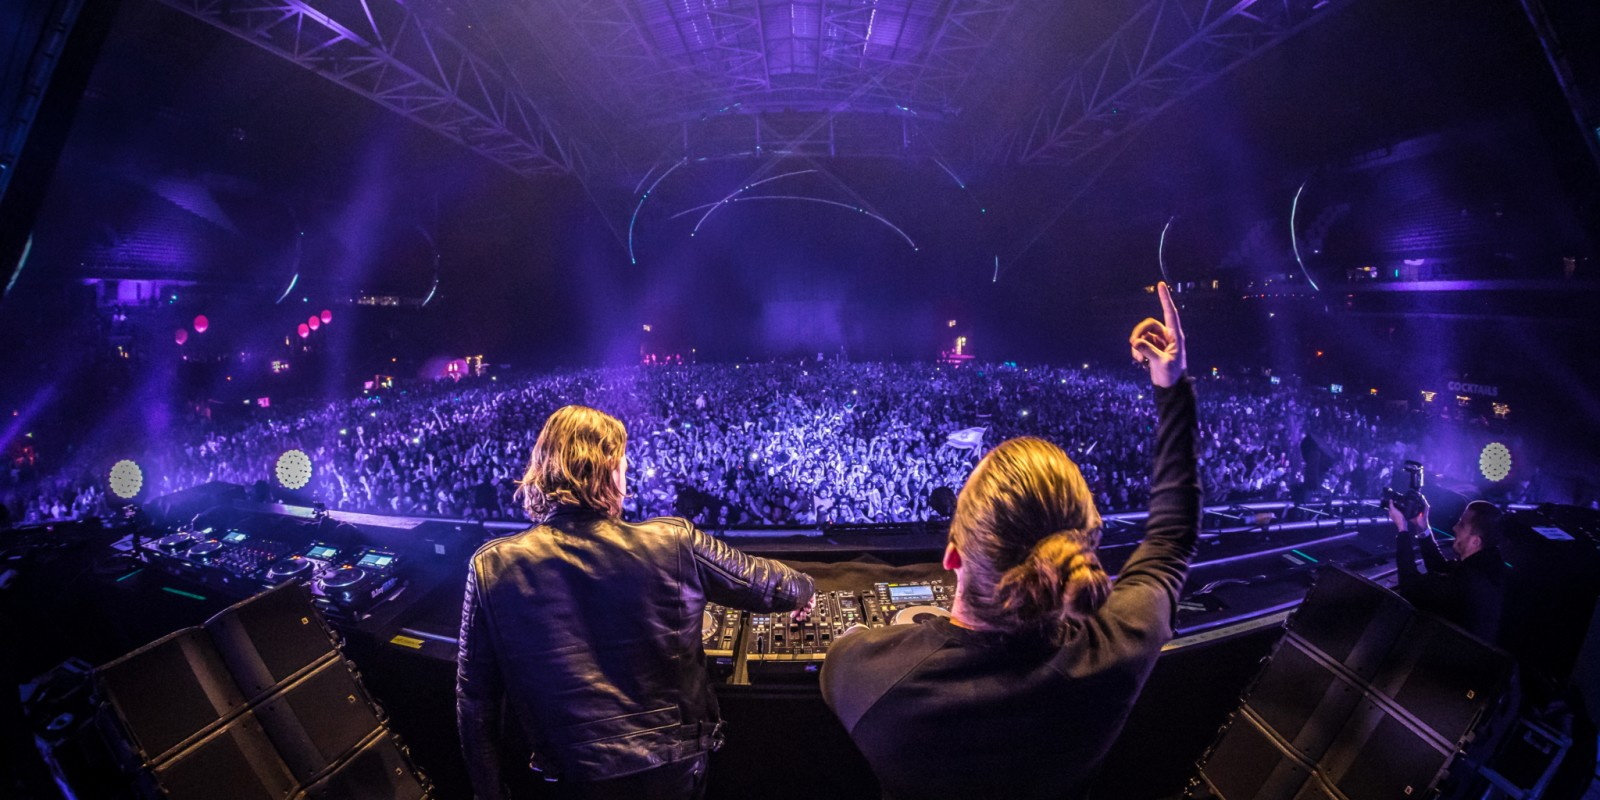 Dimitri Vegas & Like Mike performing at AMF!